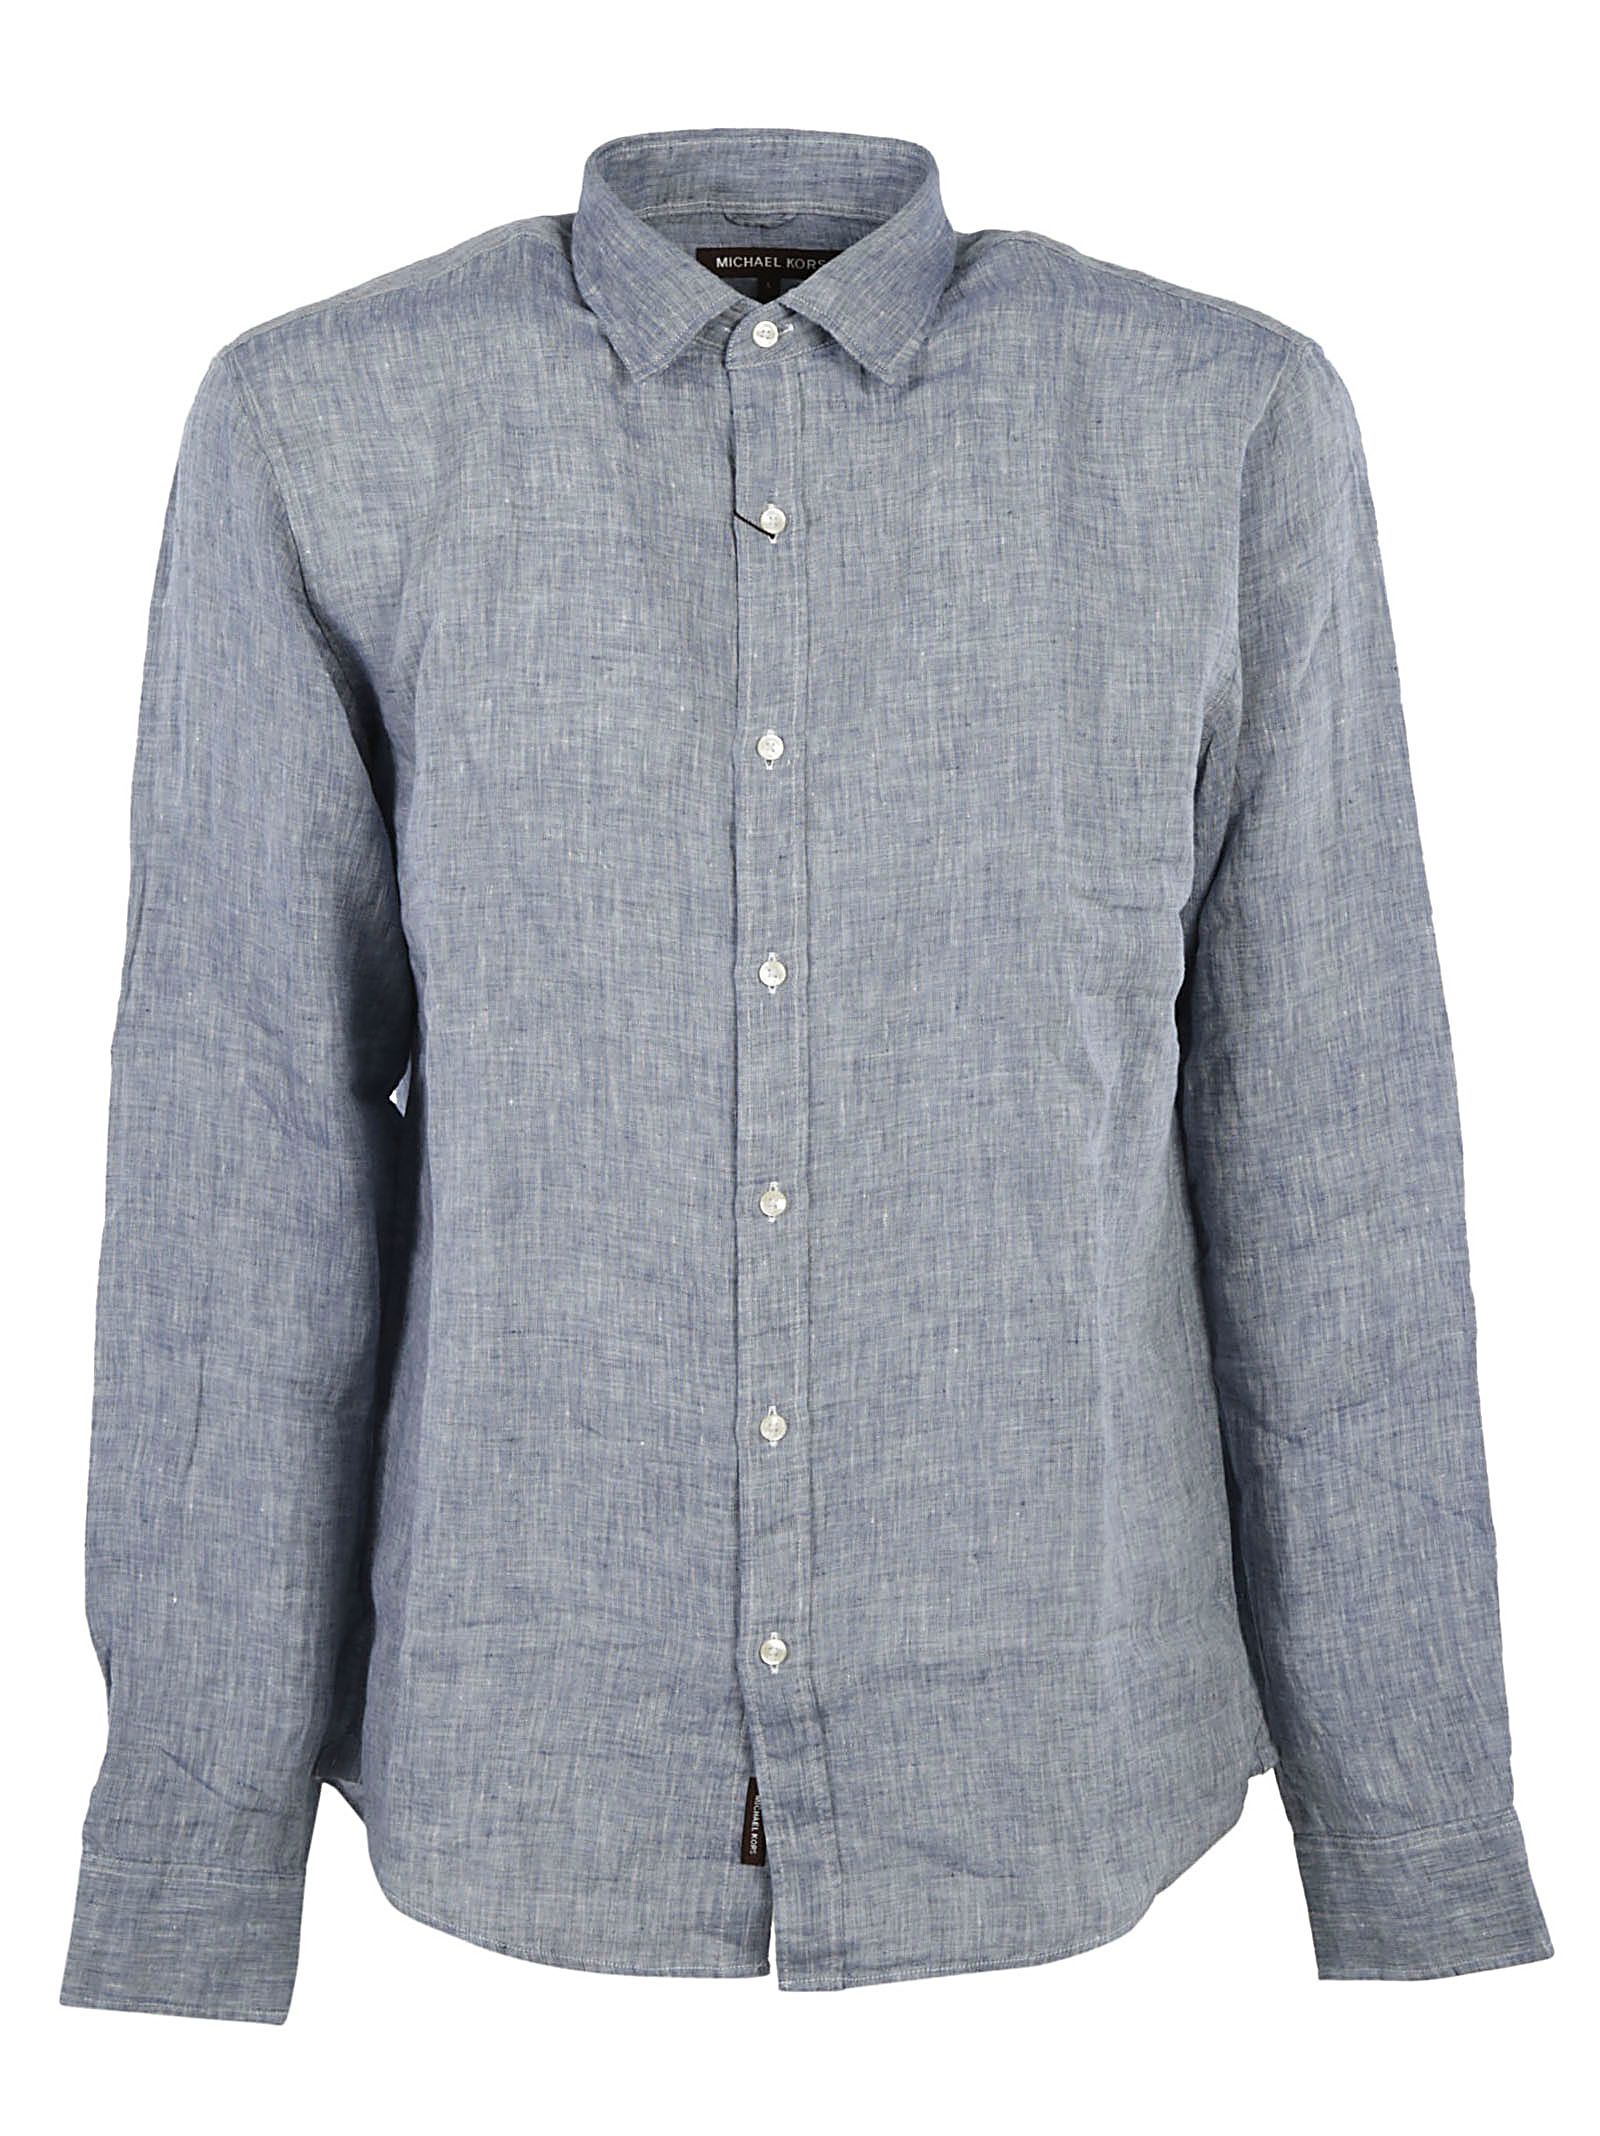 Michael kors michael kors chambray casual shirt denim for Chambray 7 s